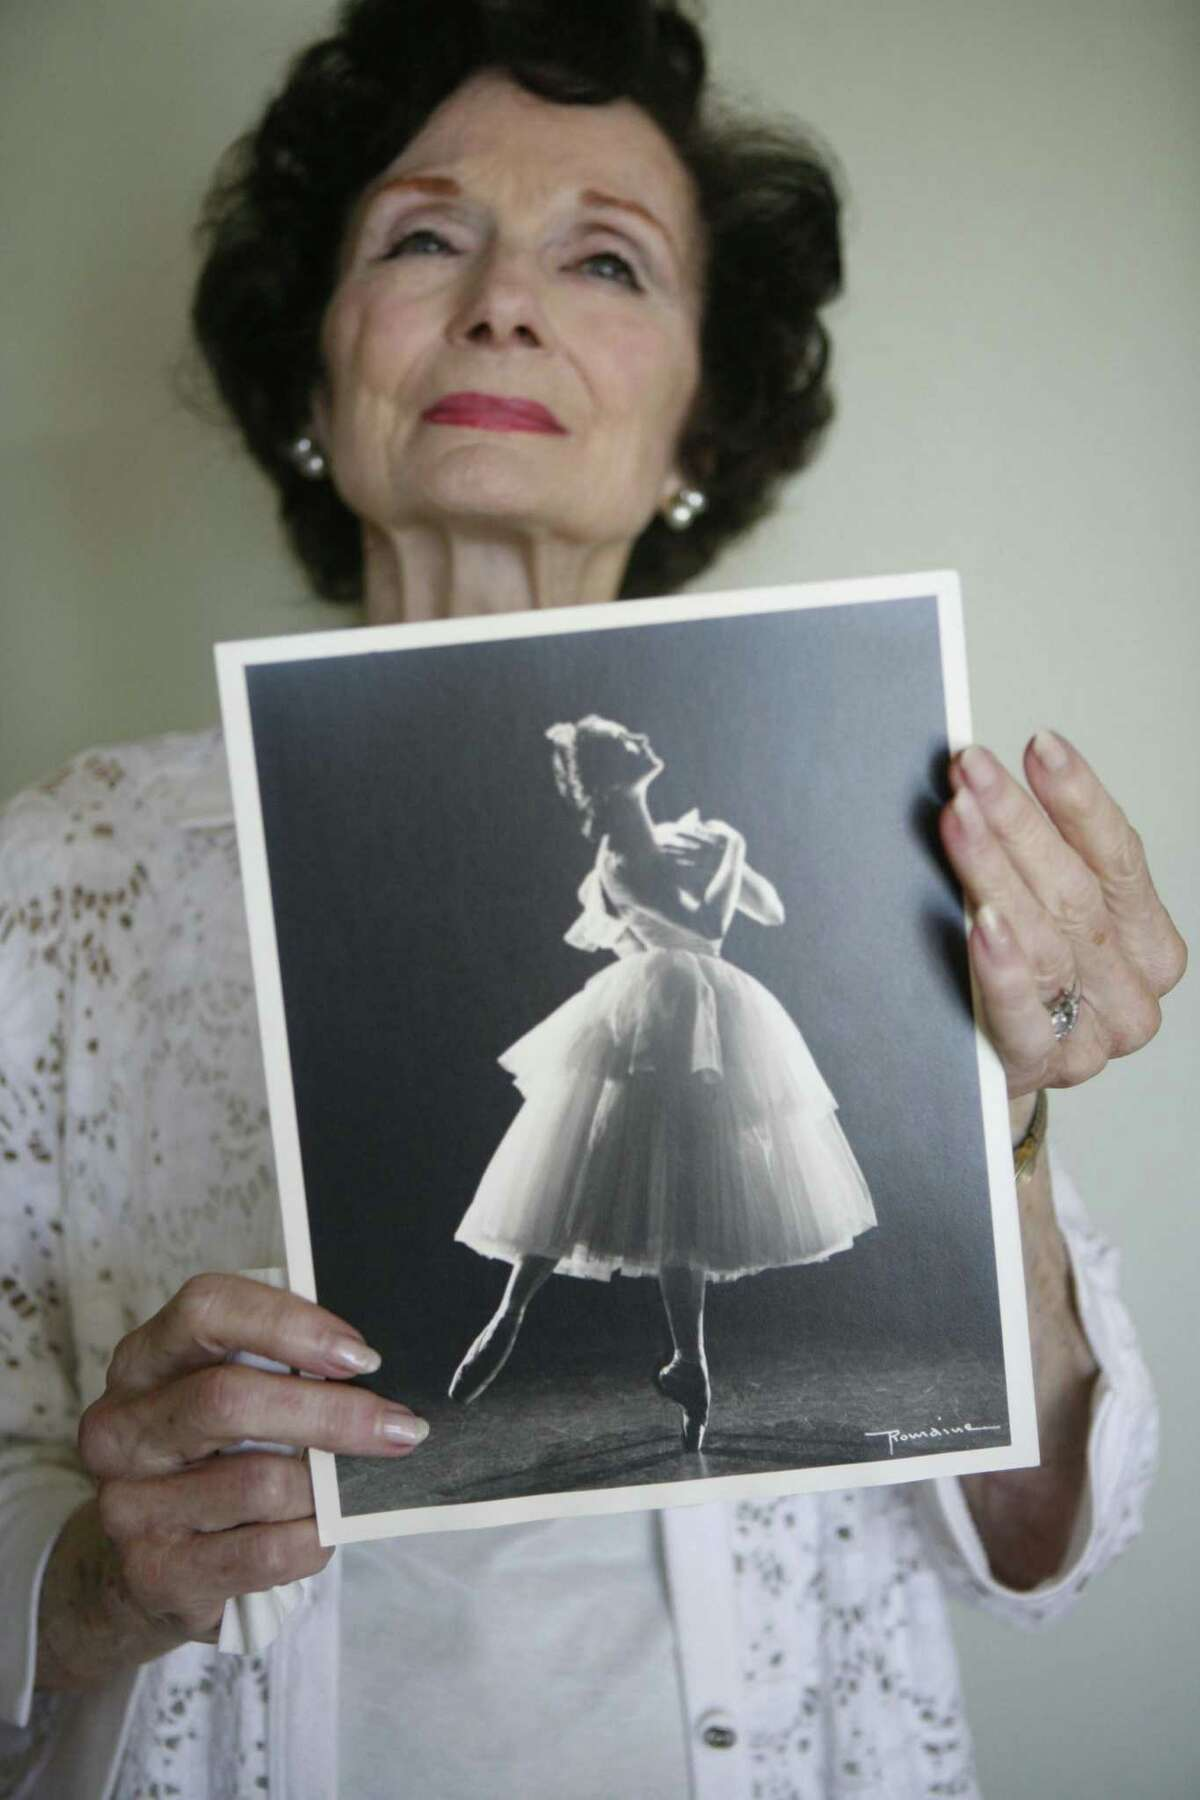 Jocelyn Vollmar, at 82, holding a photo taken of herself in the 1950s.